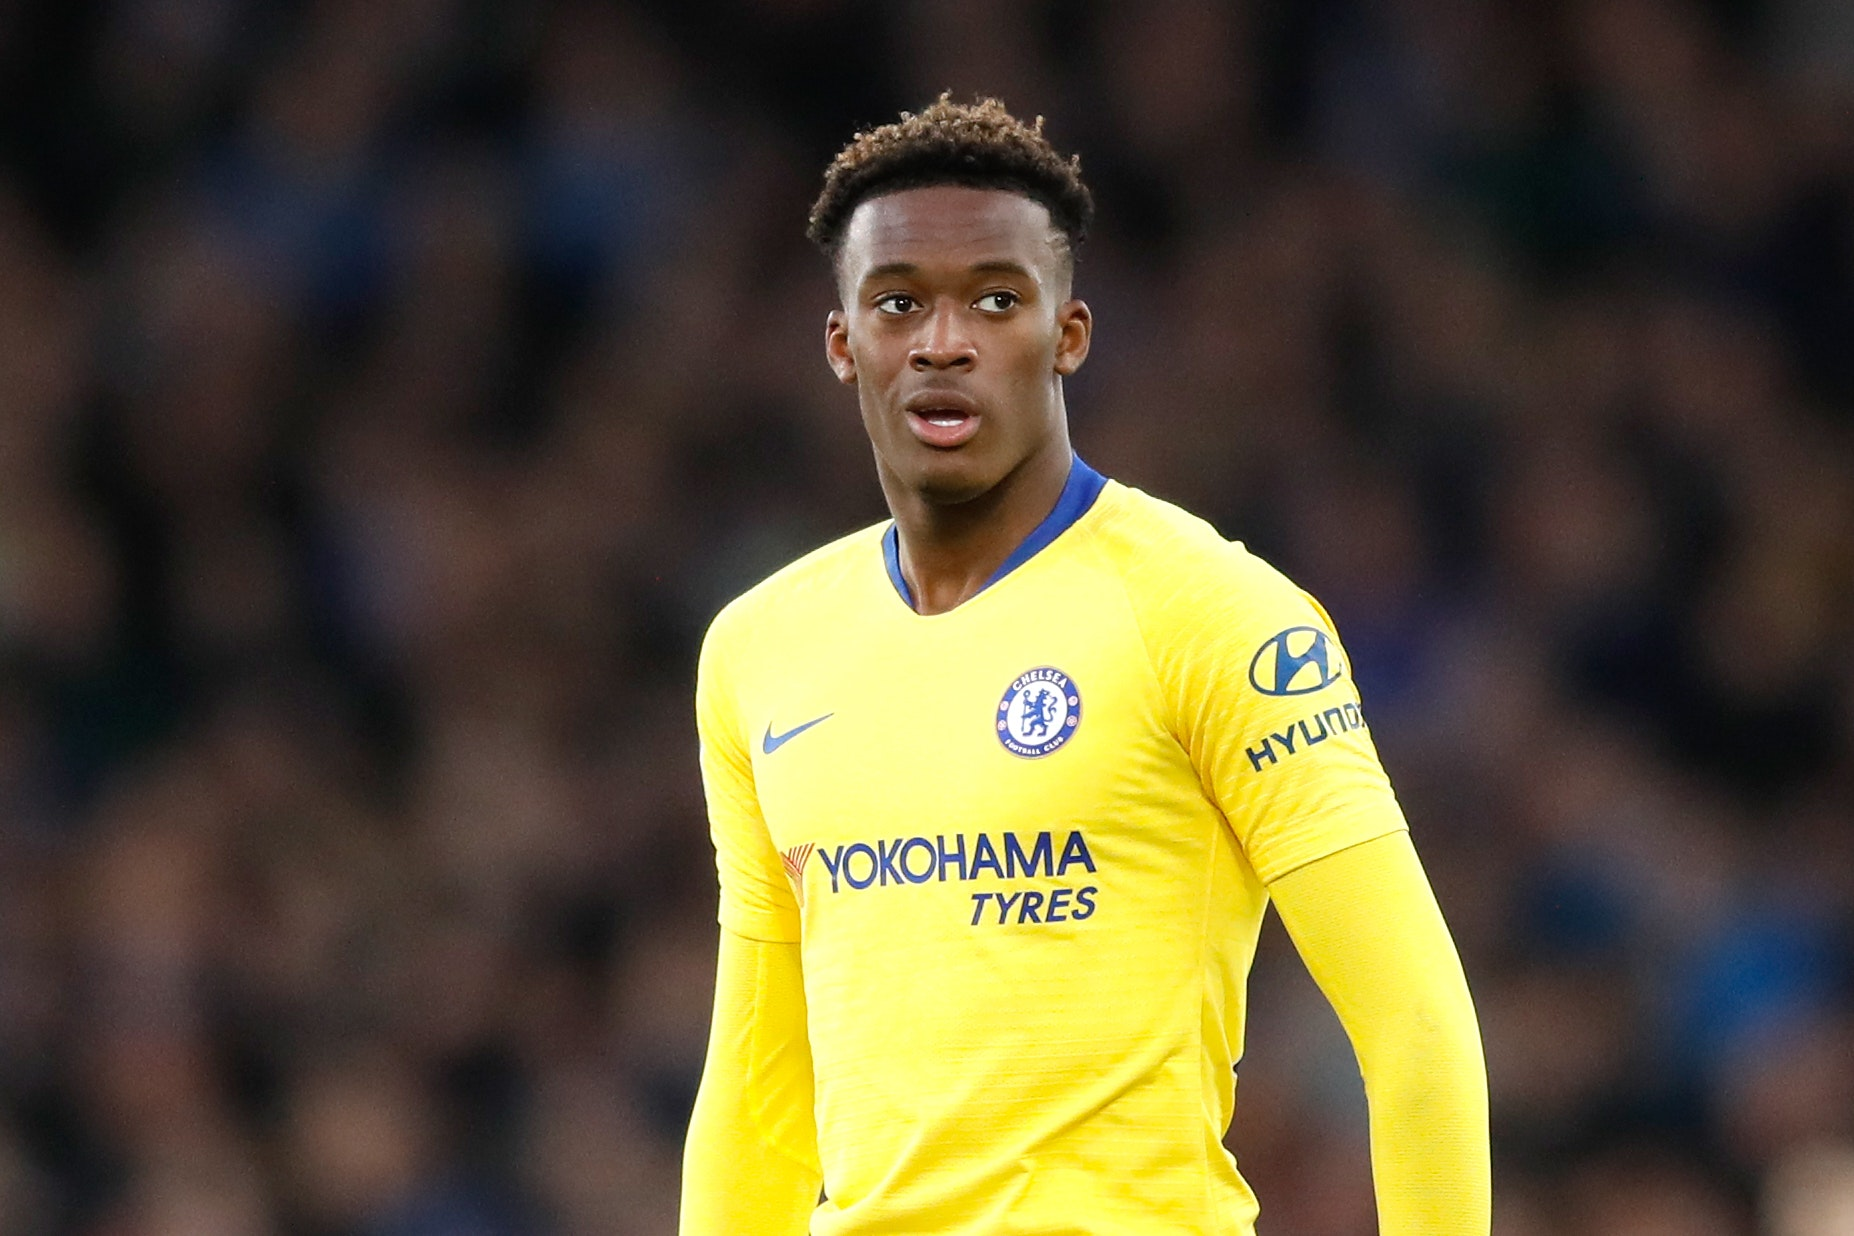 Callum Hudson-Odoi has been given his first England call up